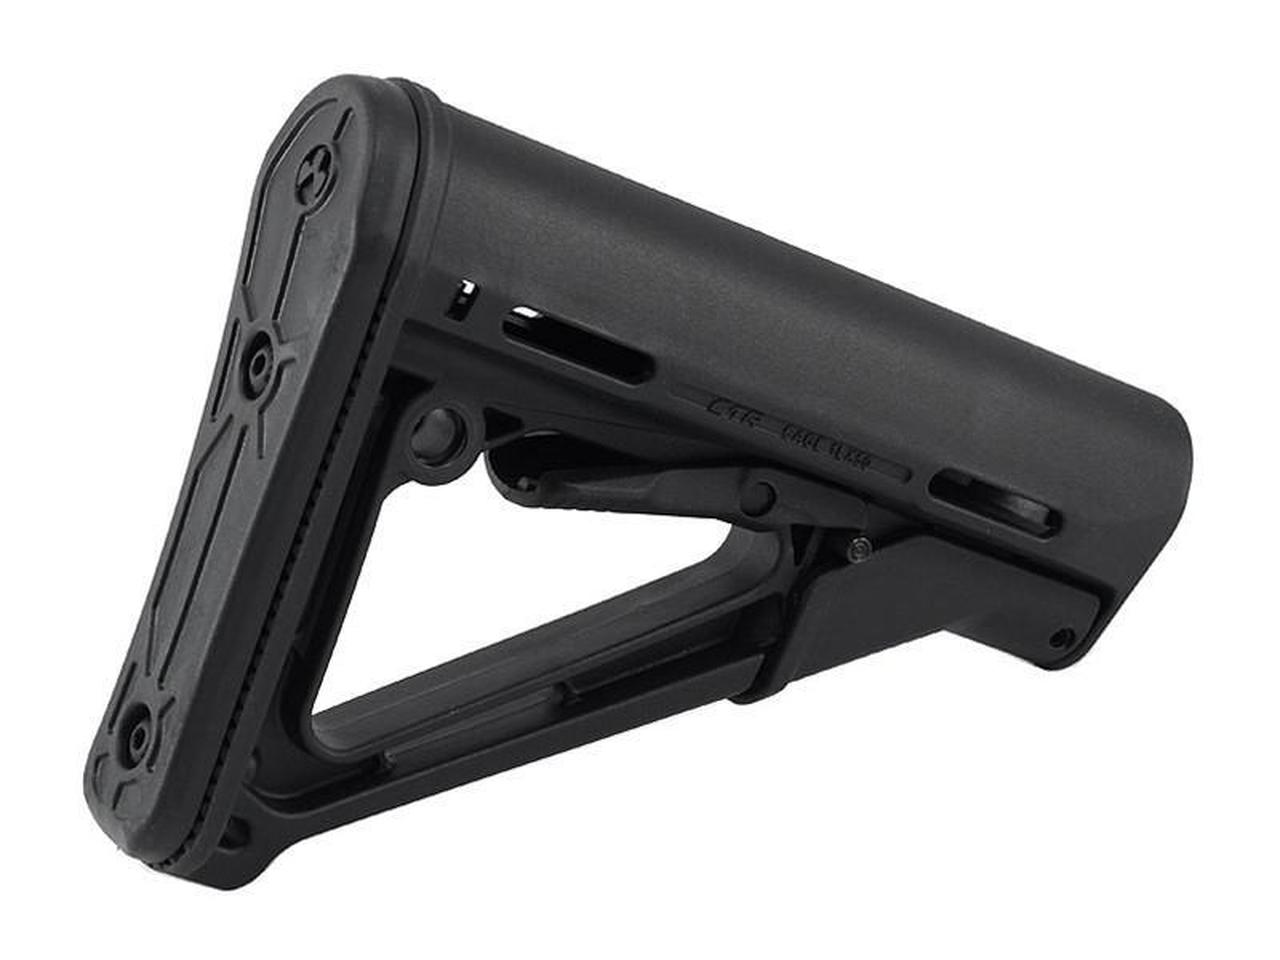 The very popular Magpul CTR Stock